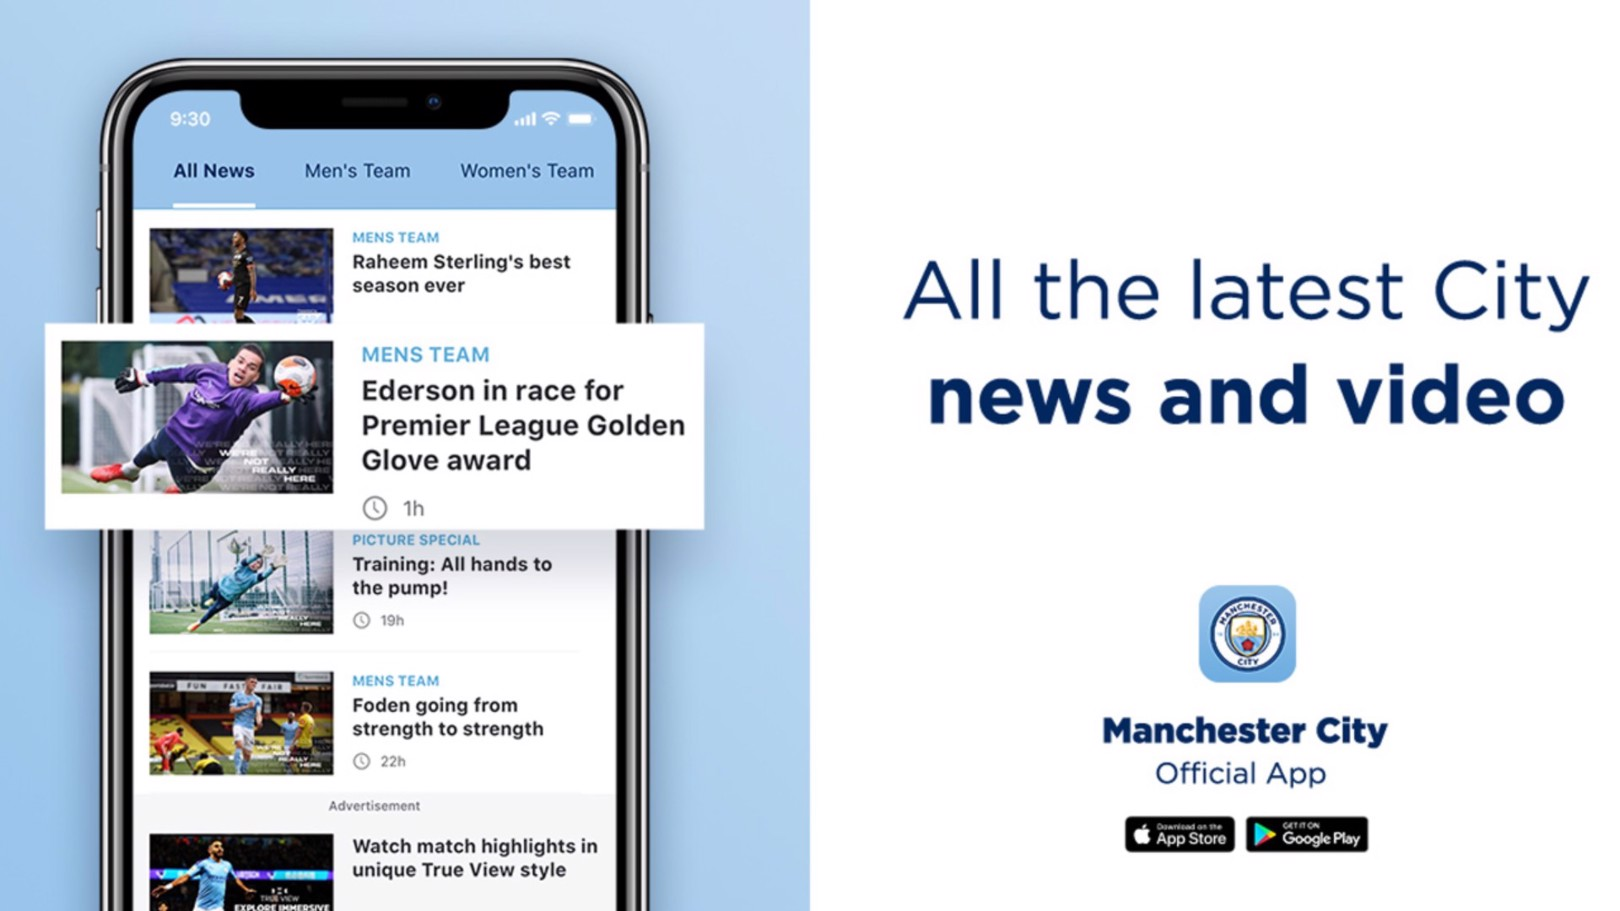 Sign up for the official Man City app and push notifications